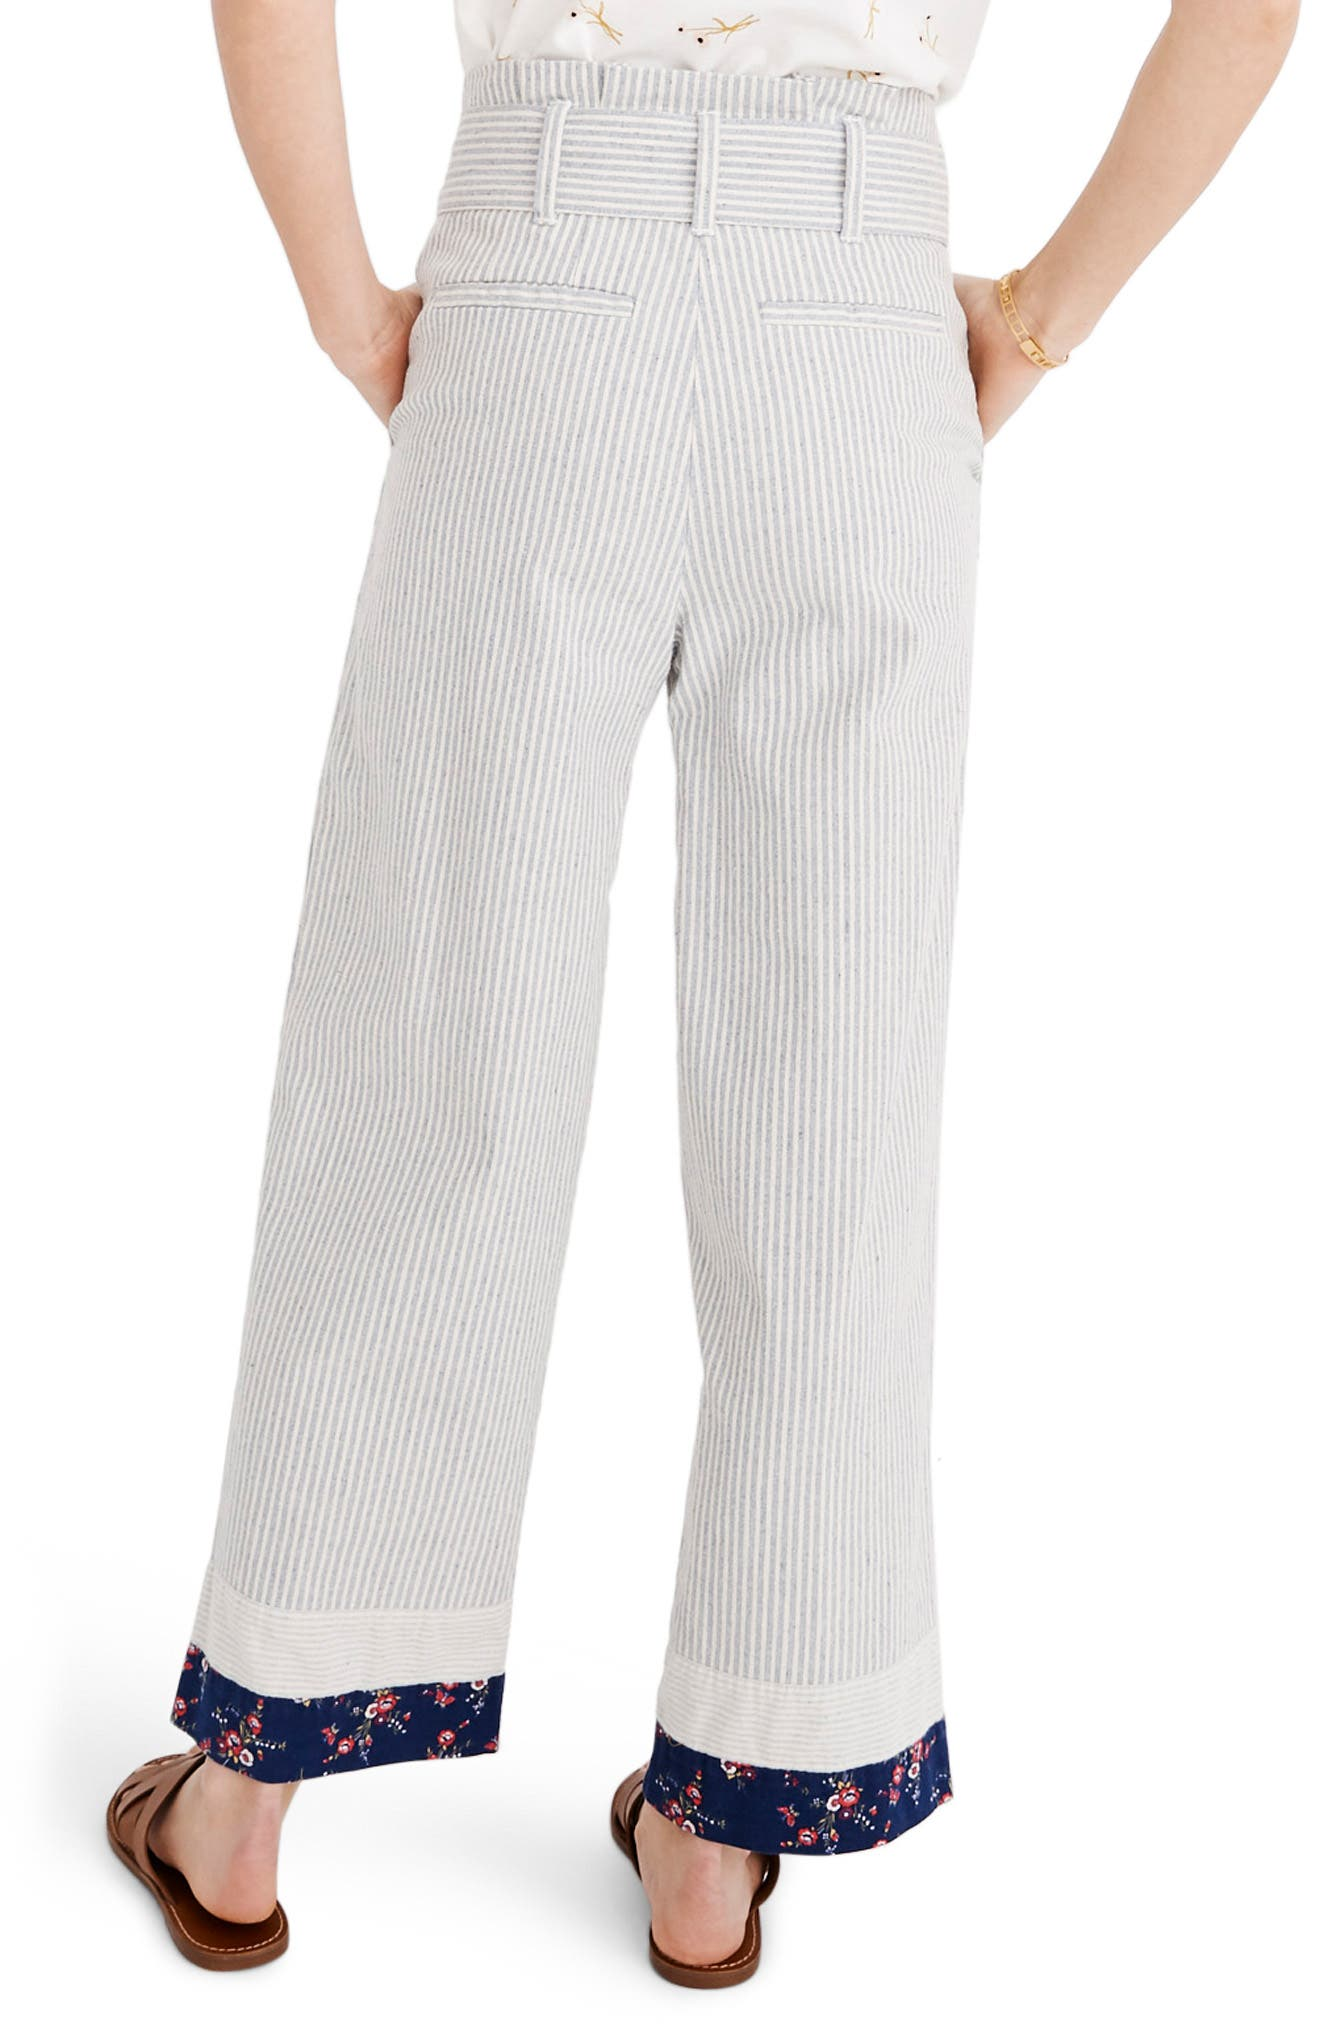 MADEWELL, x The New Denim Project<sup>®</sup> Patchwork Paperbag Pants, Alternate thumbnail 2, color, BLUE RAILROAD STRIPE